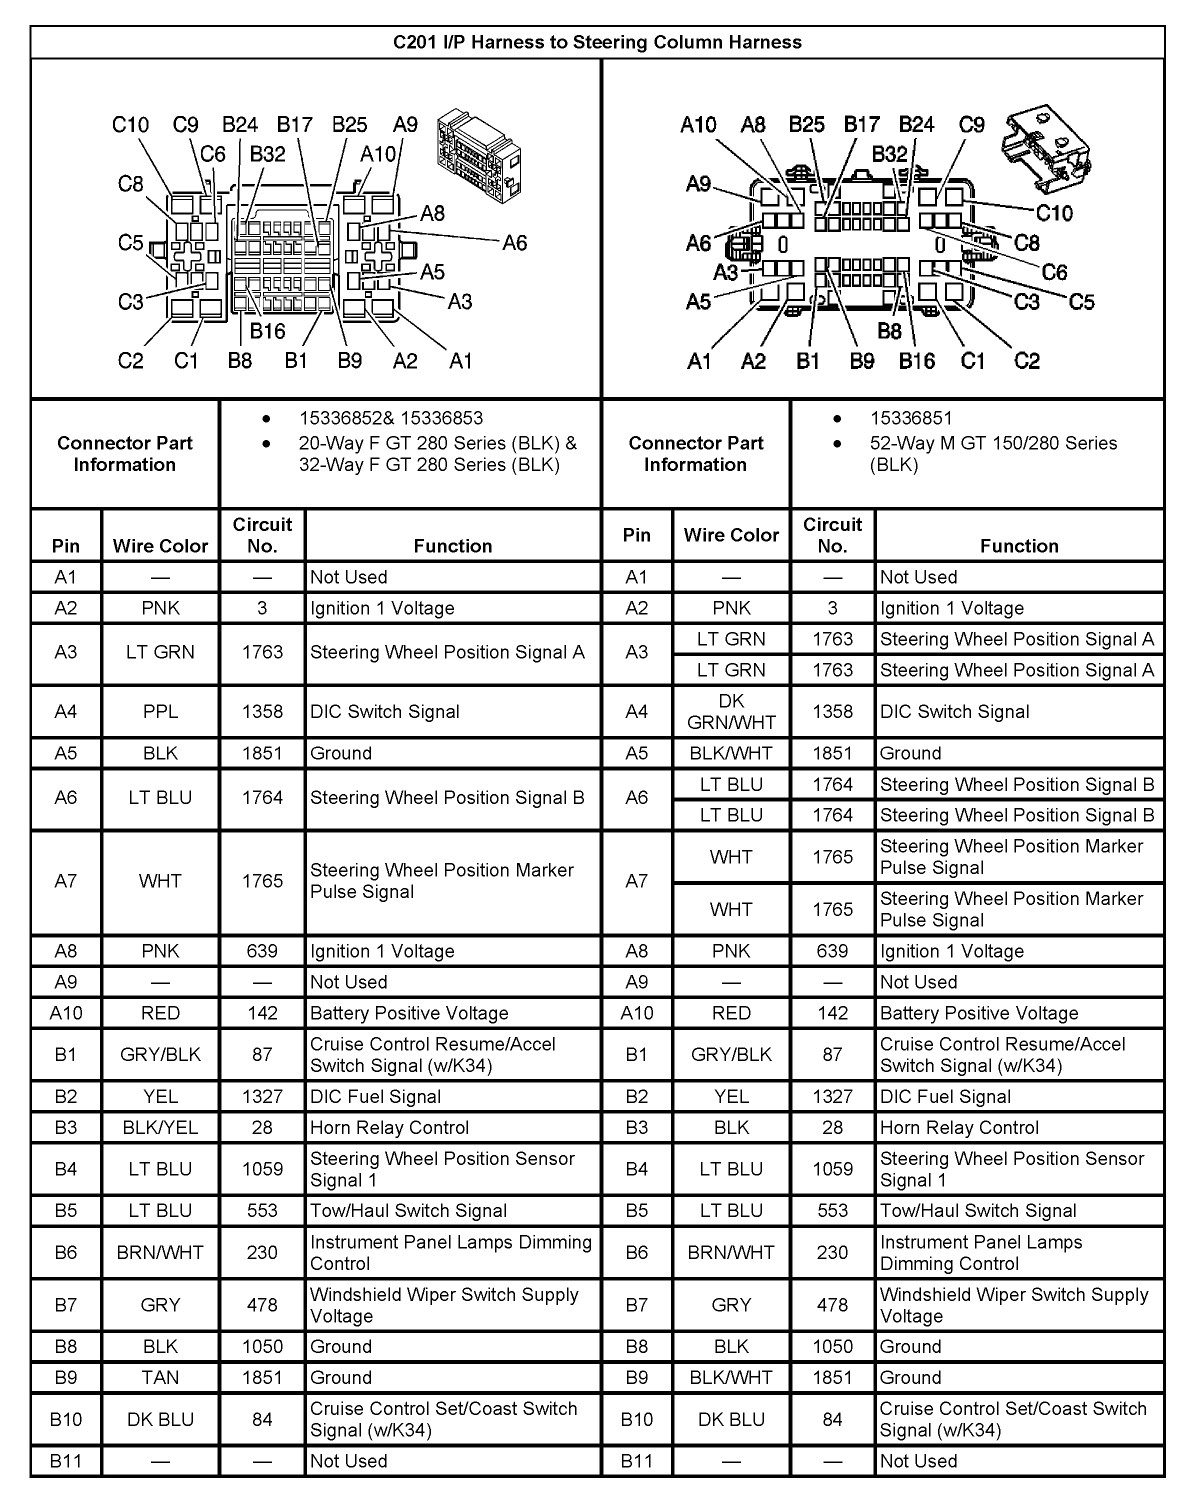 Bose Amp Wiring Diagram - Wiring Diagram Center Nissan Z Bose Amp Wiring Diagram on